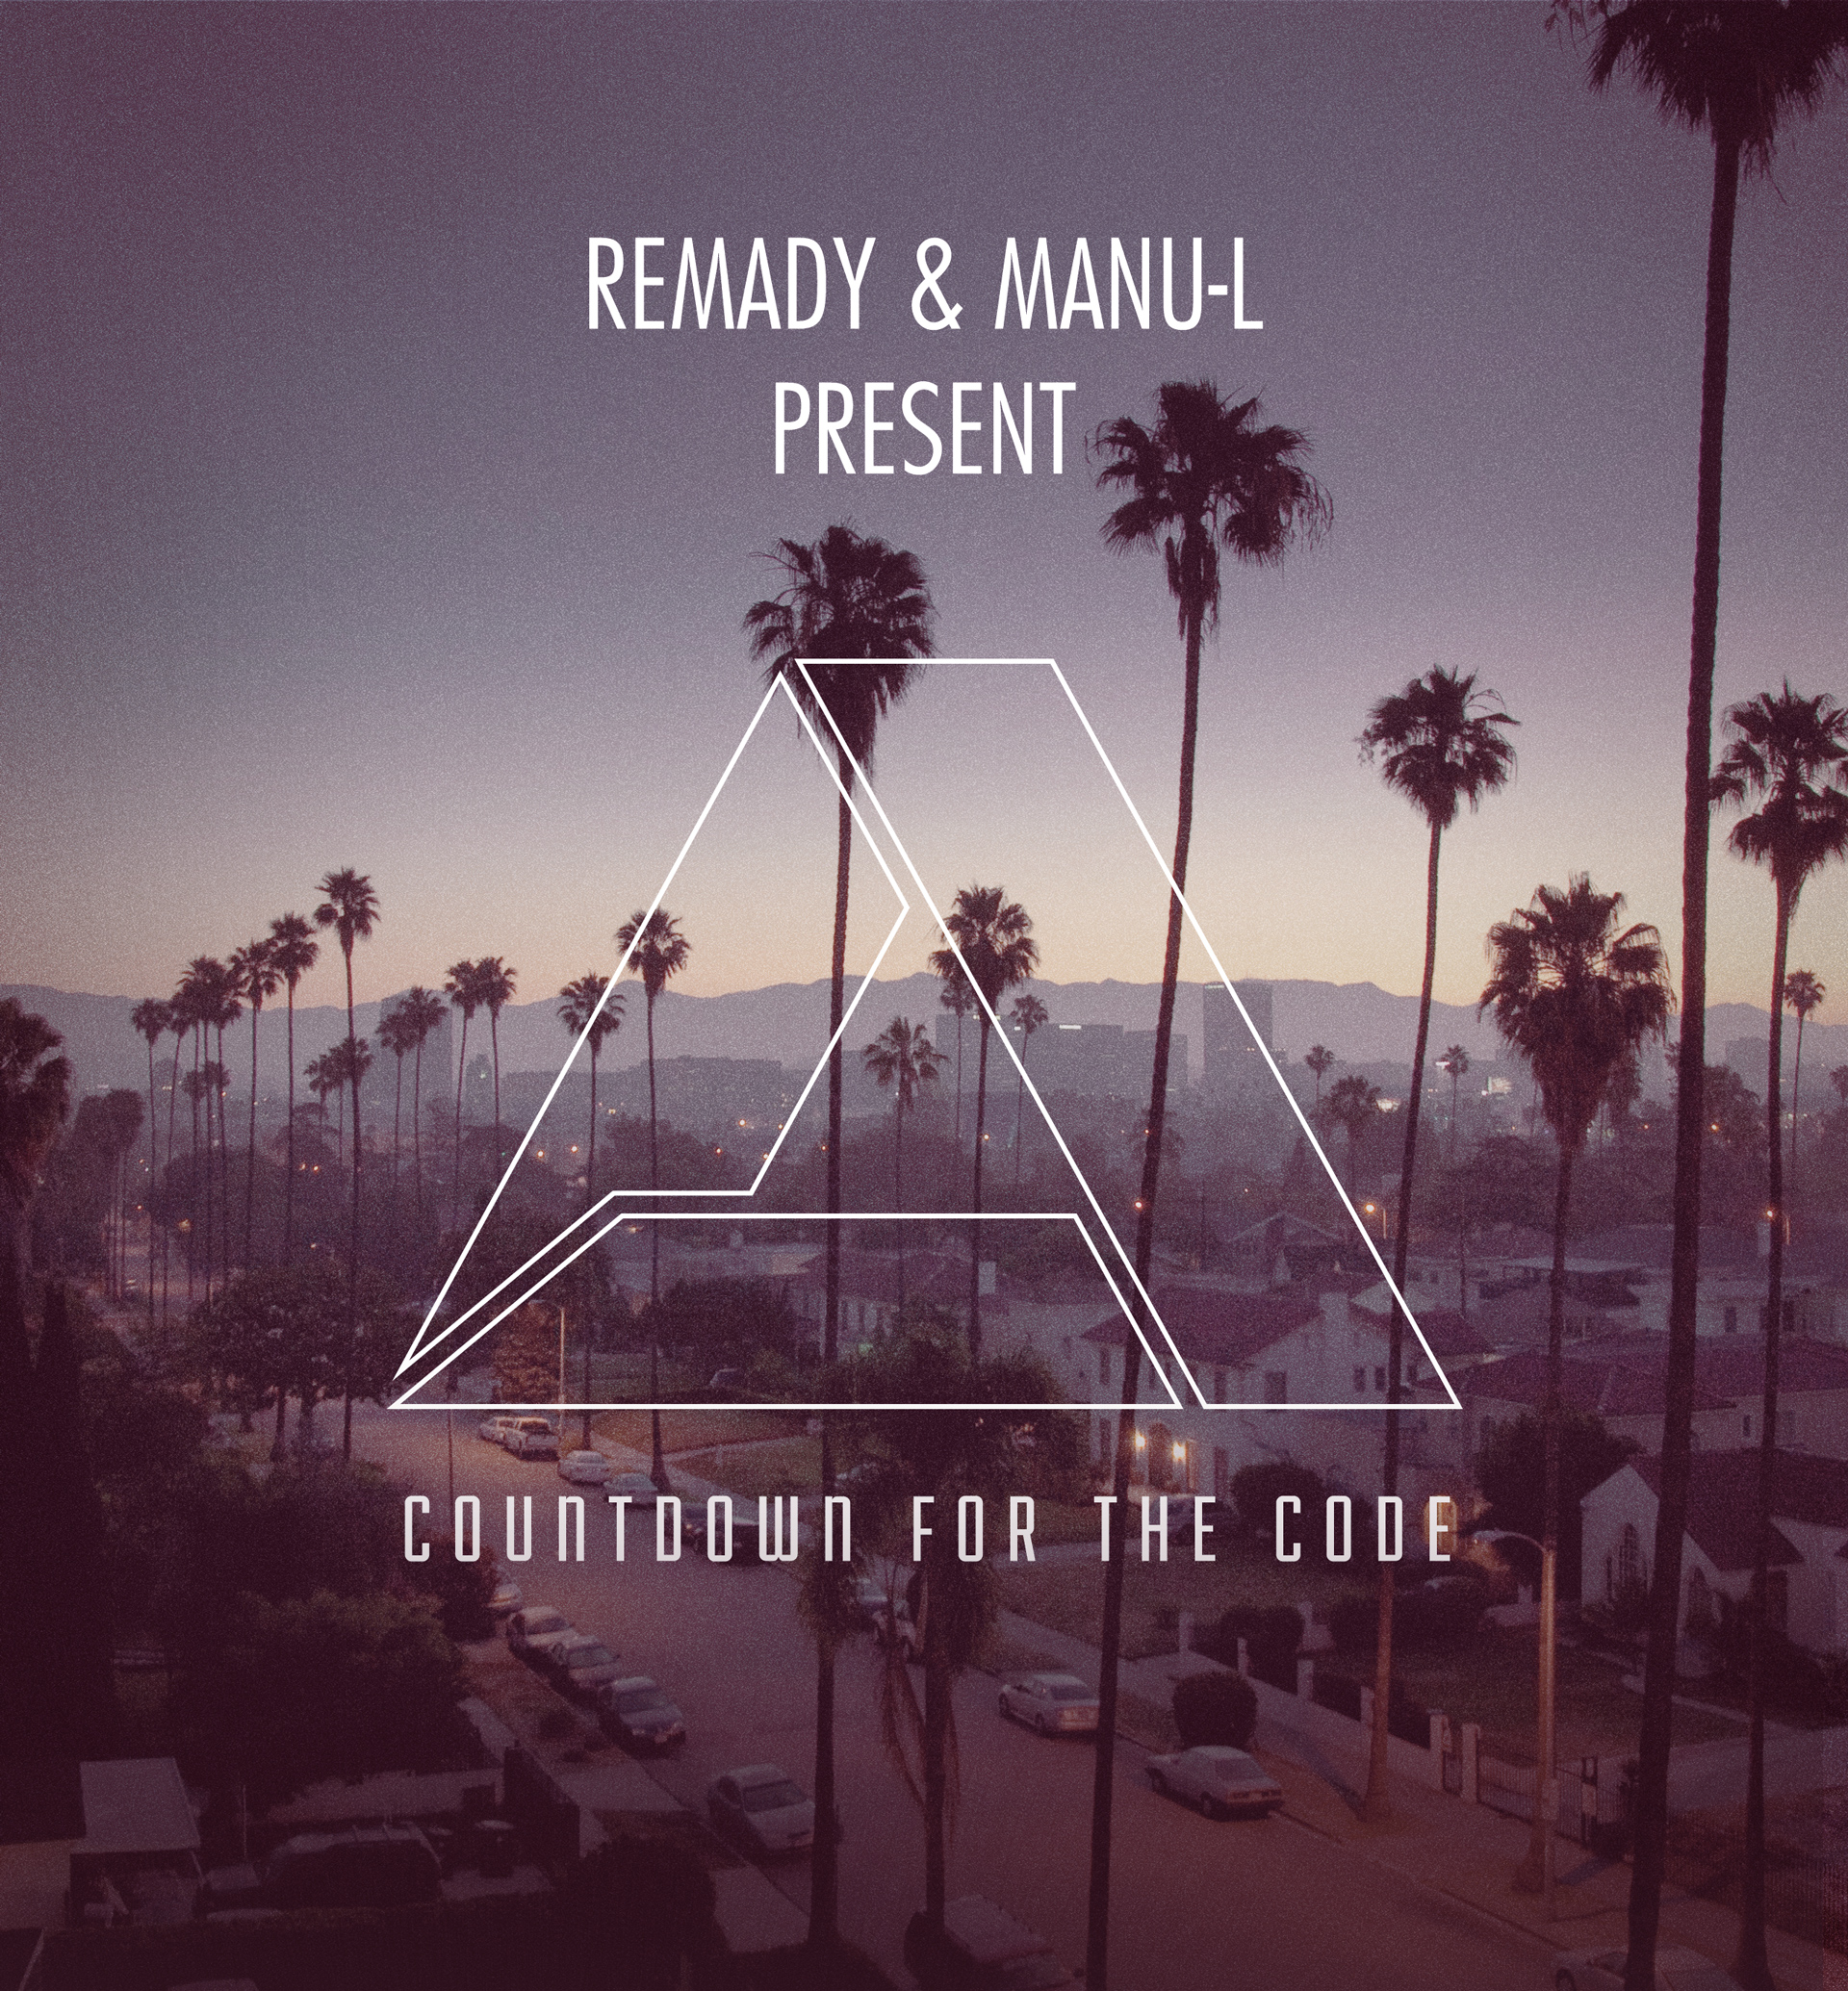 Documentary_Film_-_Countdown_for_The_Code_-_Remady_01